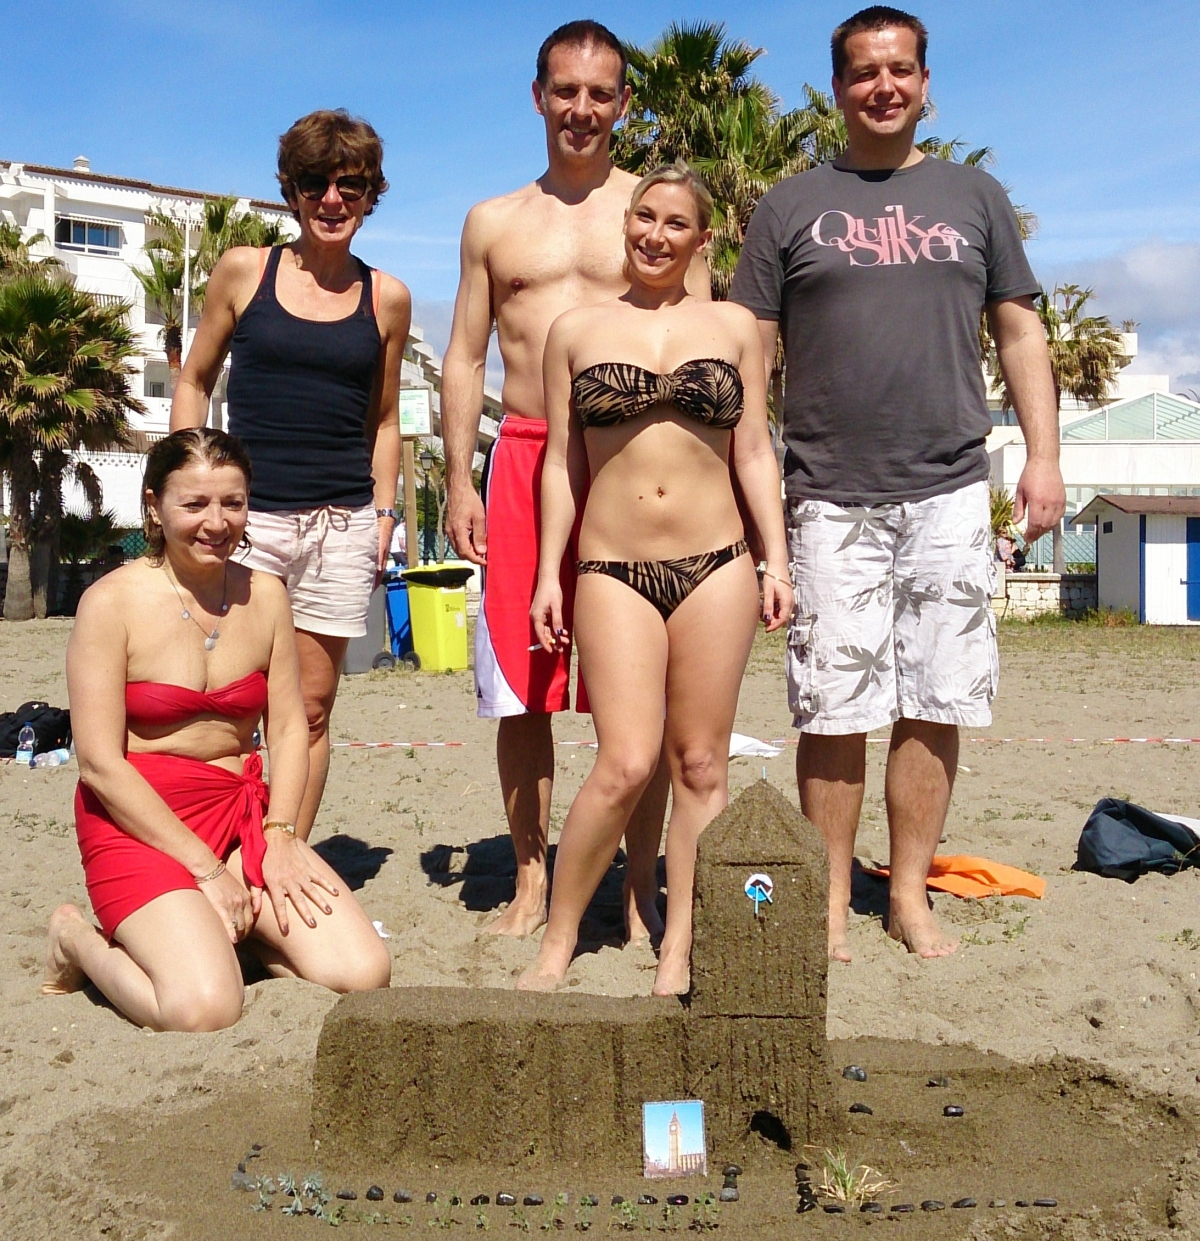 SANDCASTEL CHALLENGE Marbella an intriguing activity at the beach 06 | Team4you